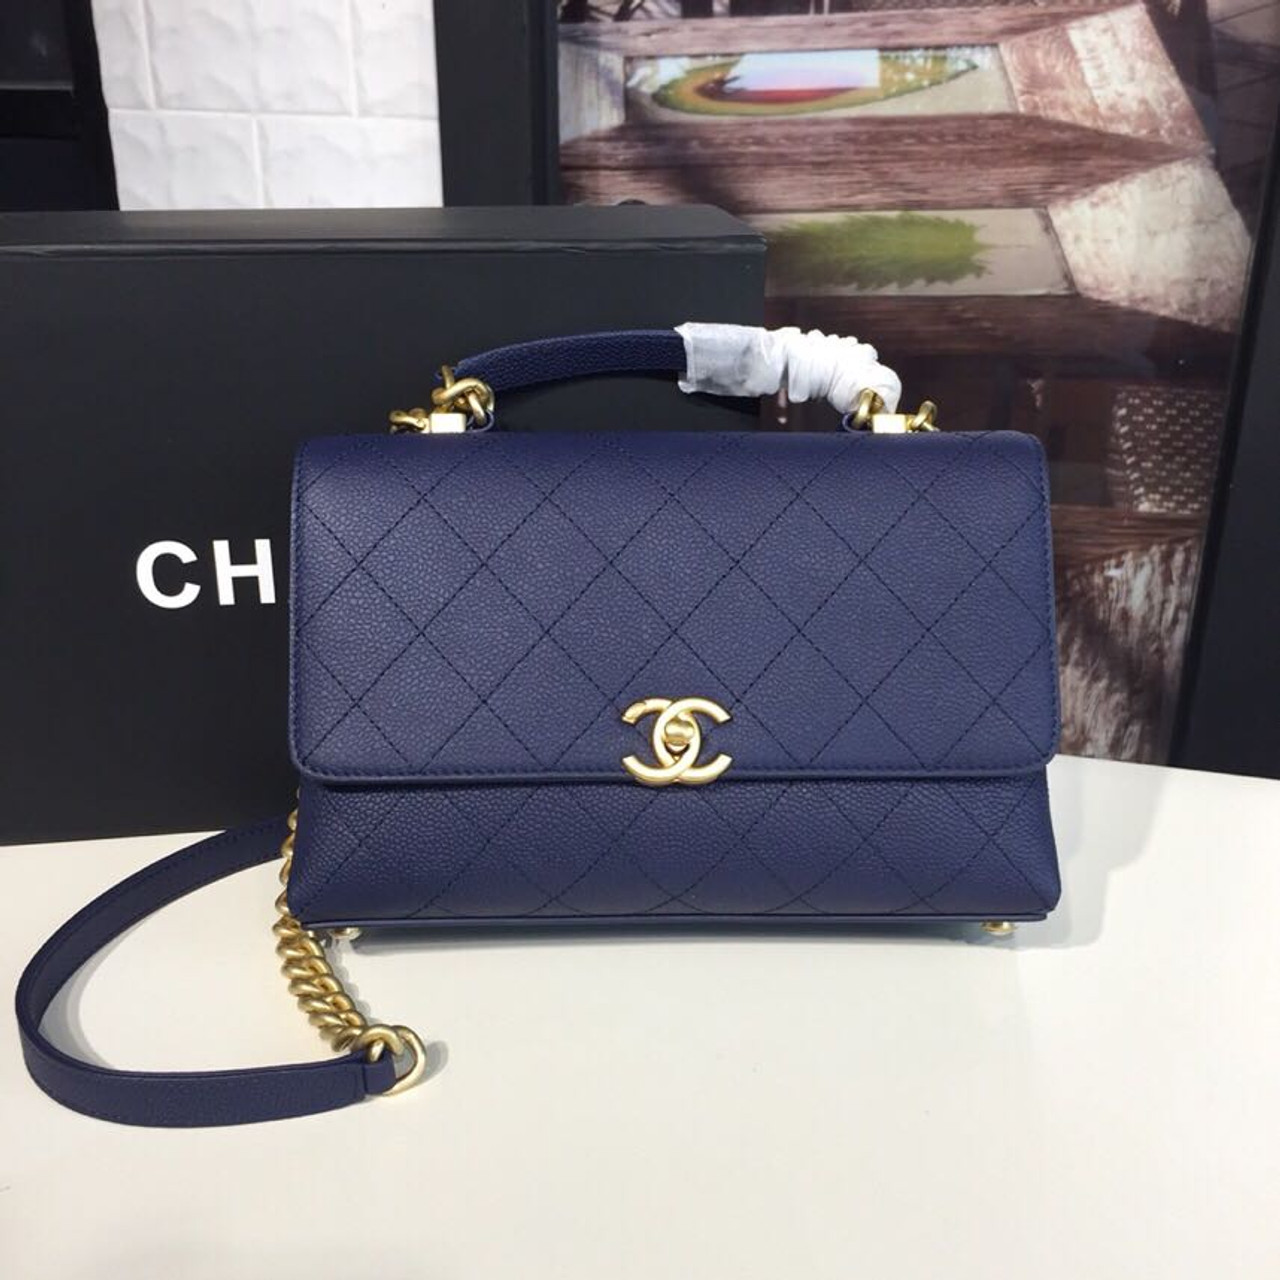 5fd0952ce4d3c4 Chanel Flap Bag Medium 24cm Grained Calfskin Leather Spring/Summer 2019 Act  1 2019 Collection